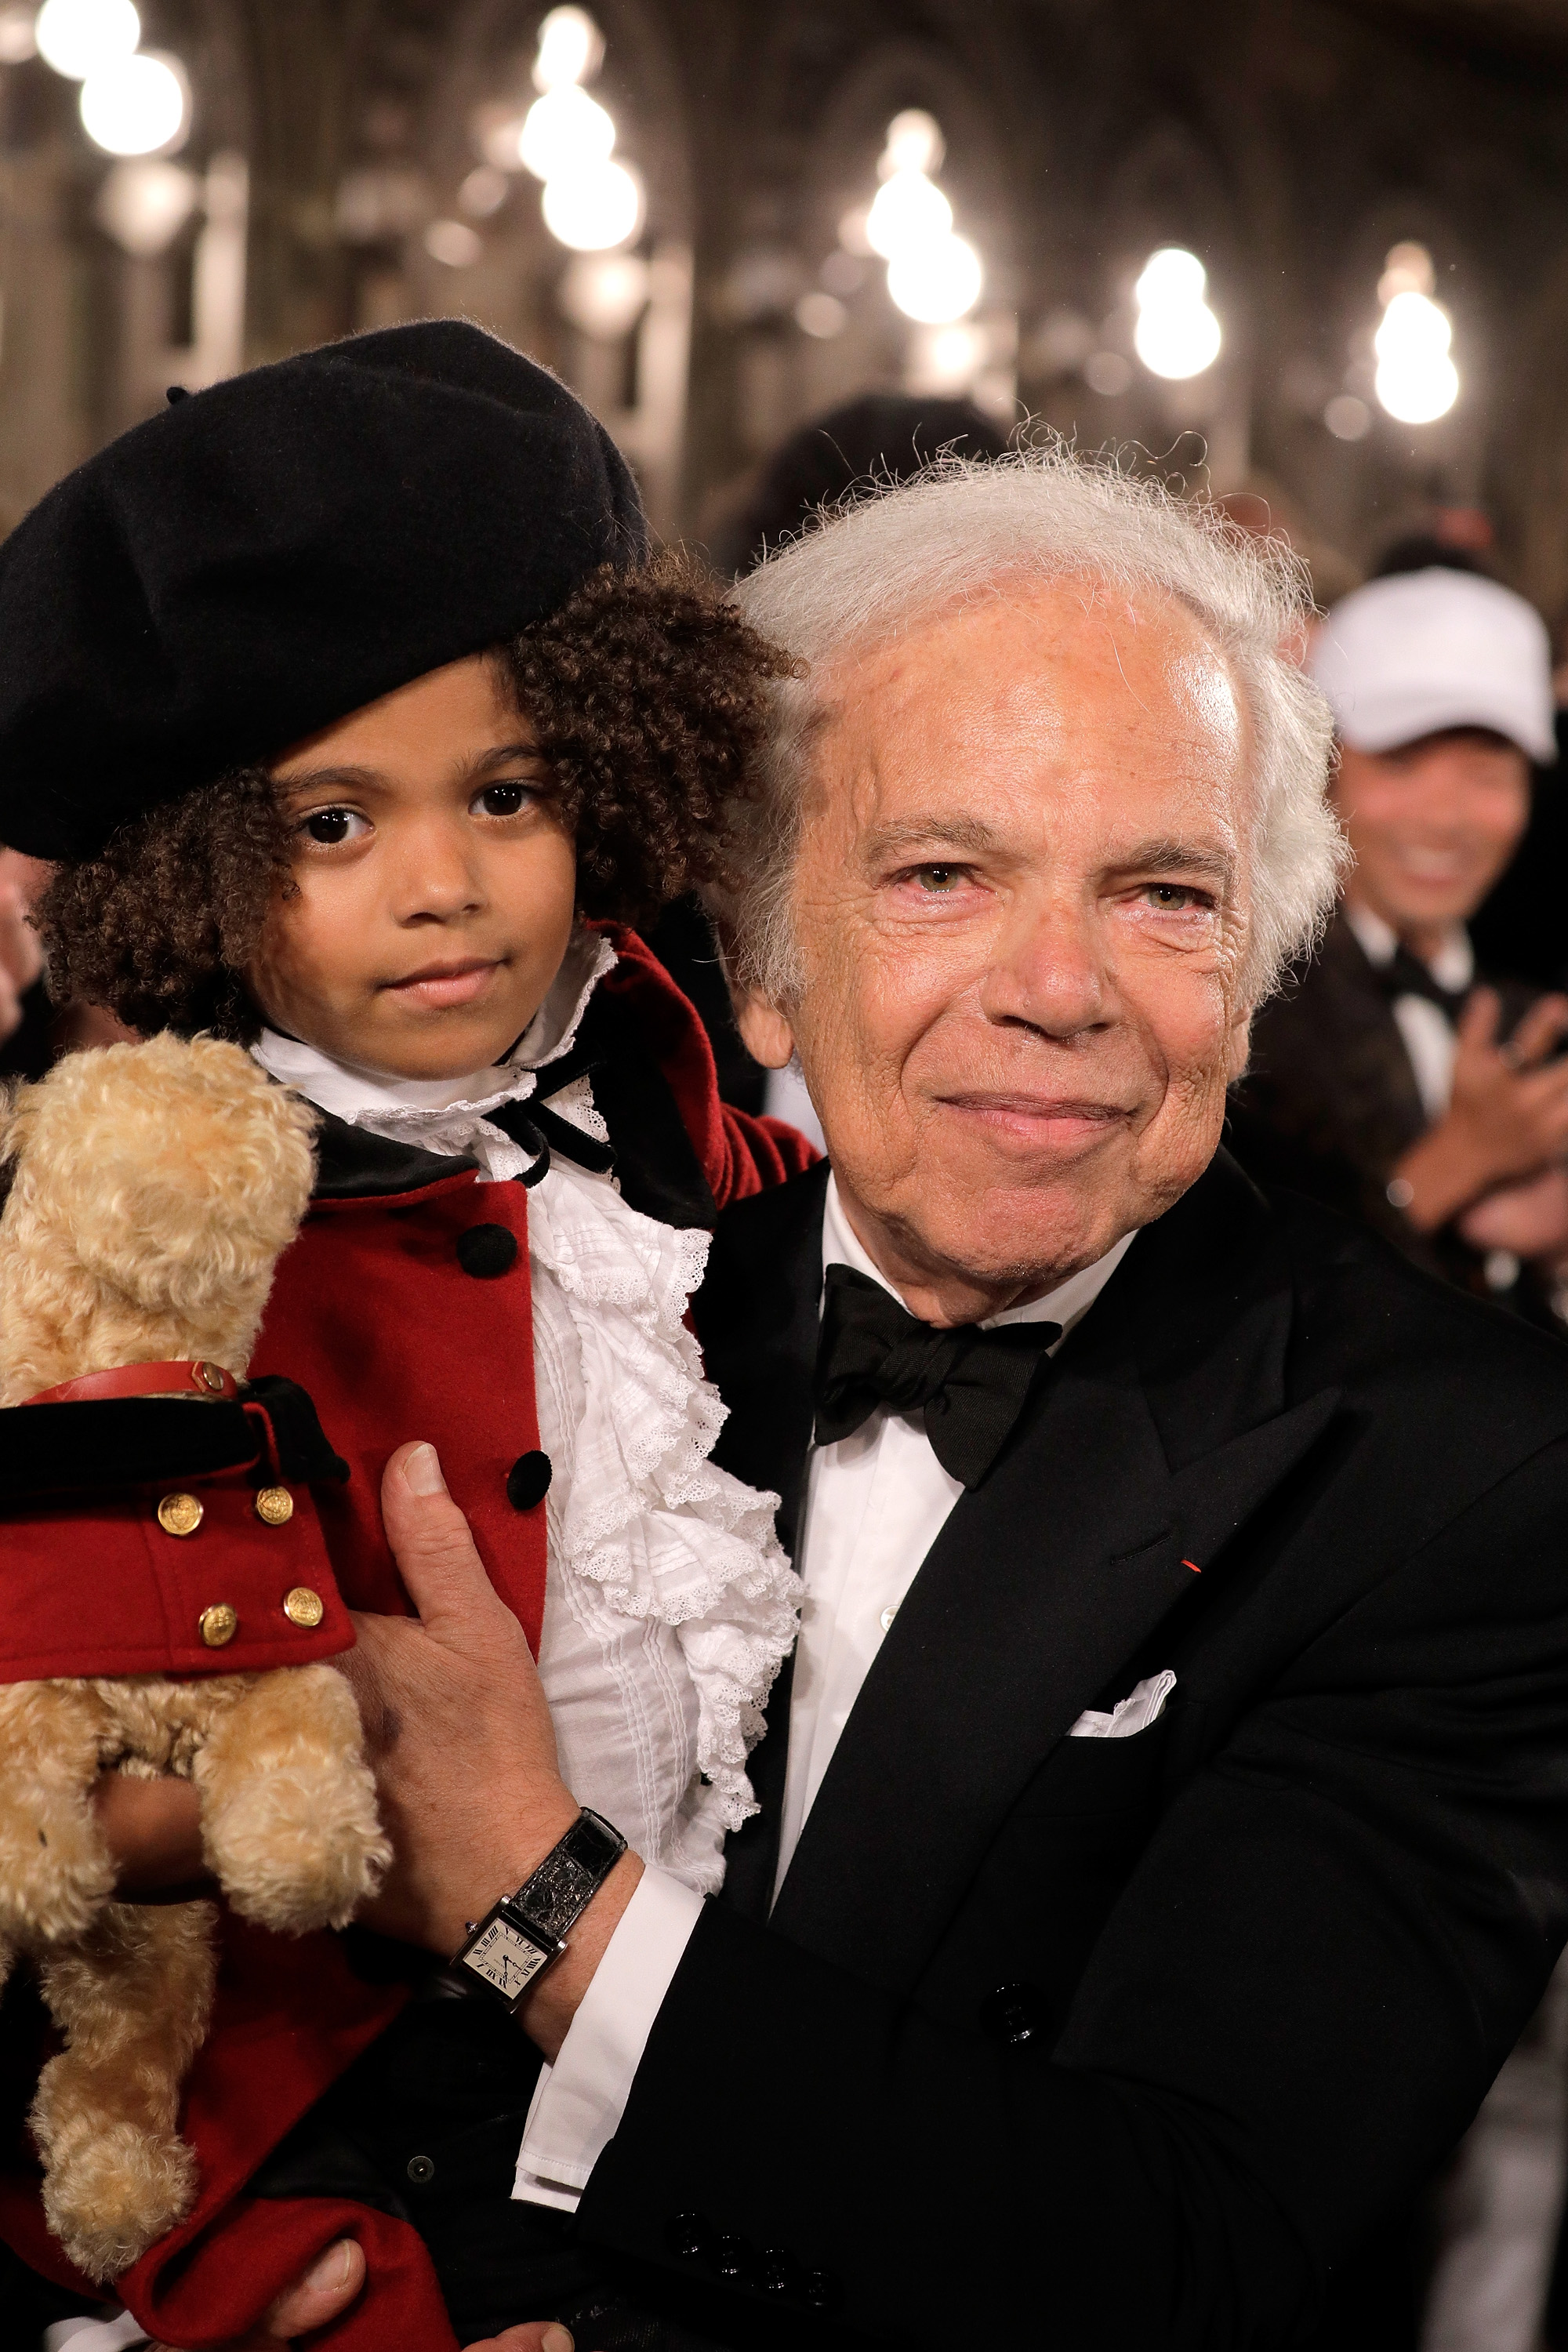 NEW YORK, NY - SEPTEMBER 07:  Designer Ralph Lauren walks the runway for Ralph Lauren fashion show during New York Fashion Week at Bethesda Terrace on September 7, 2018 in New York City.  (Photo by Randy Brooke/Getty Images)